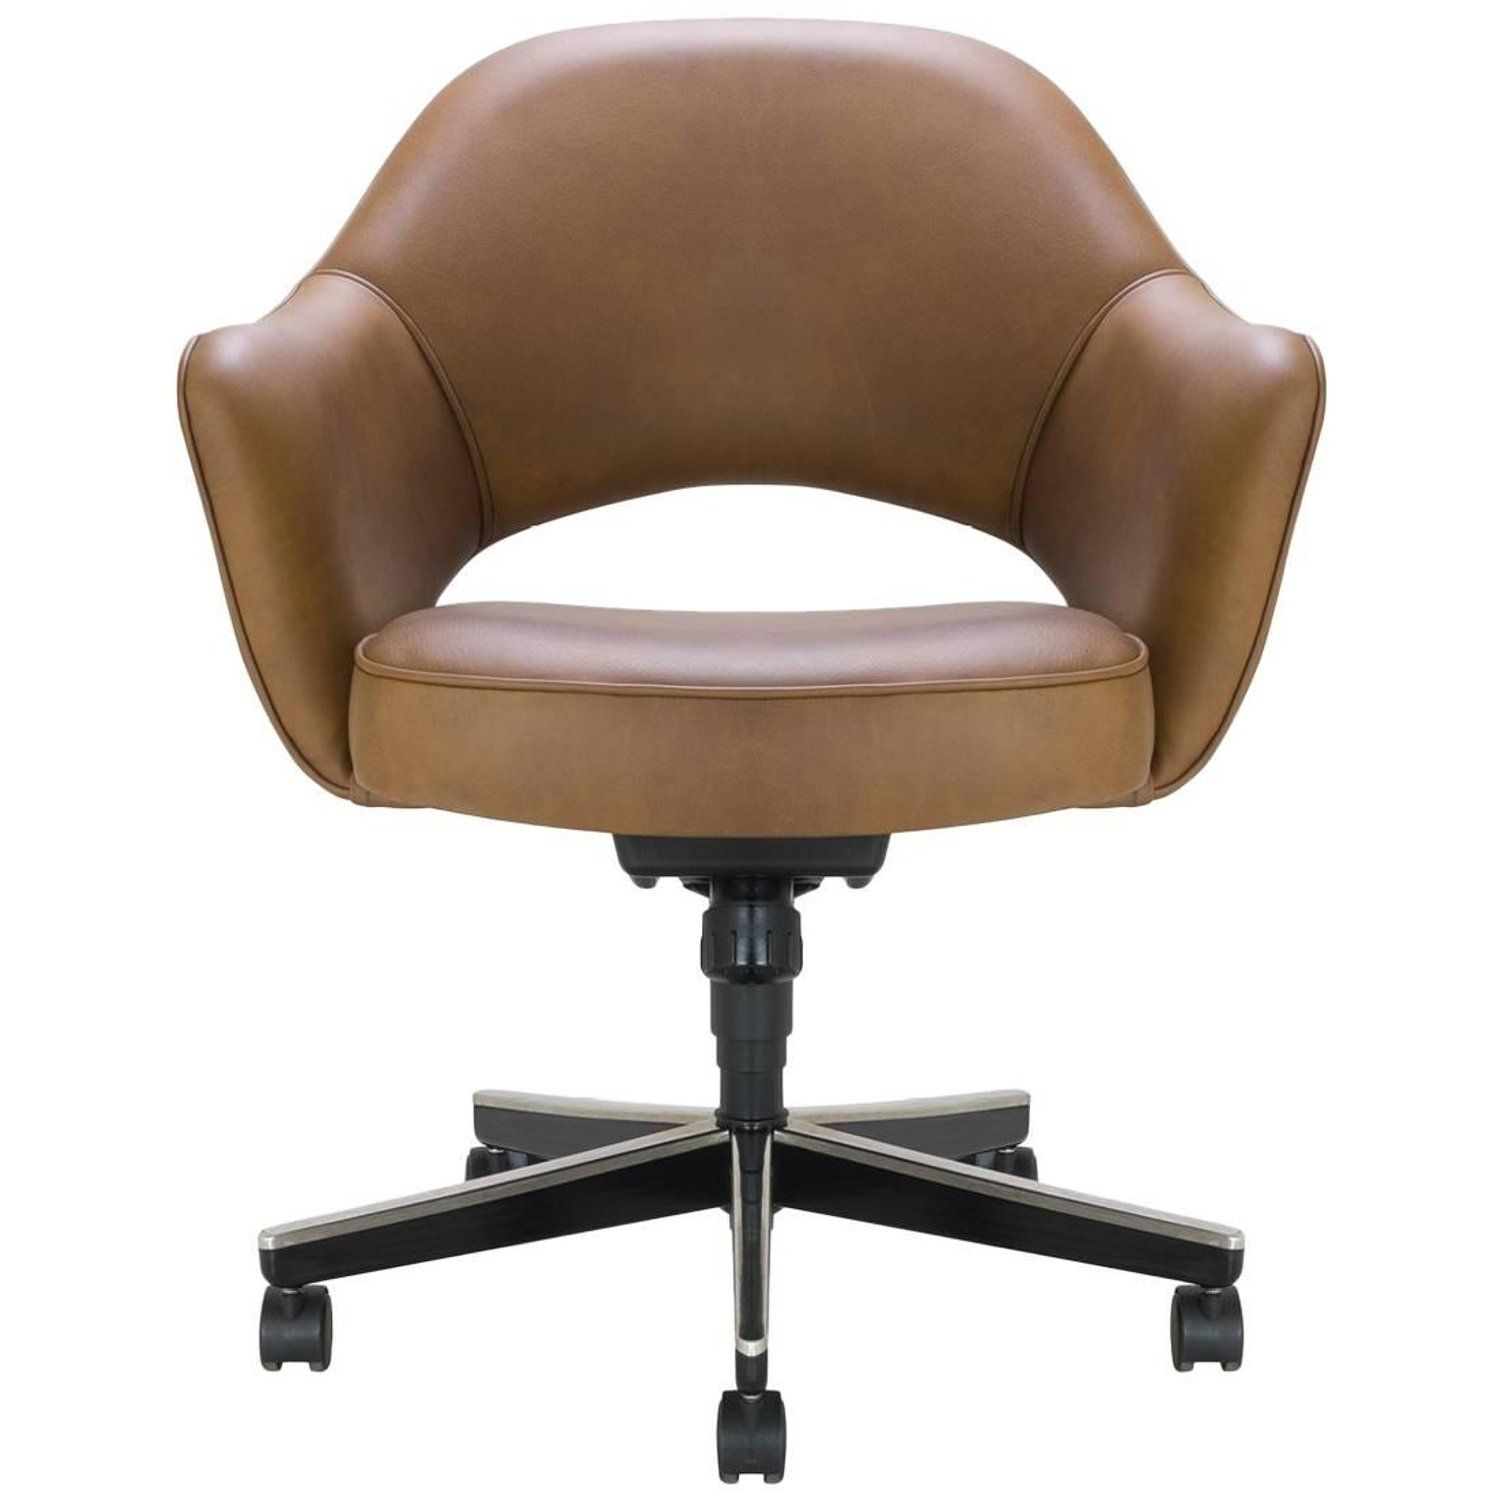 Fashionable Chapleau Ii Arm Chairs Pertaining To Saarinen Executive Arm Chair In Saddle Leather, Swivel Base (View 9 of 20)